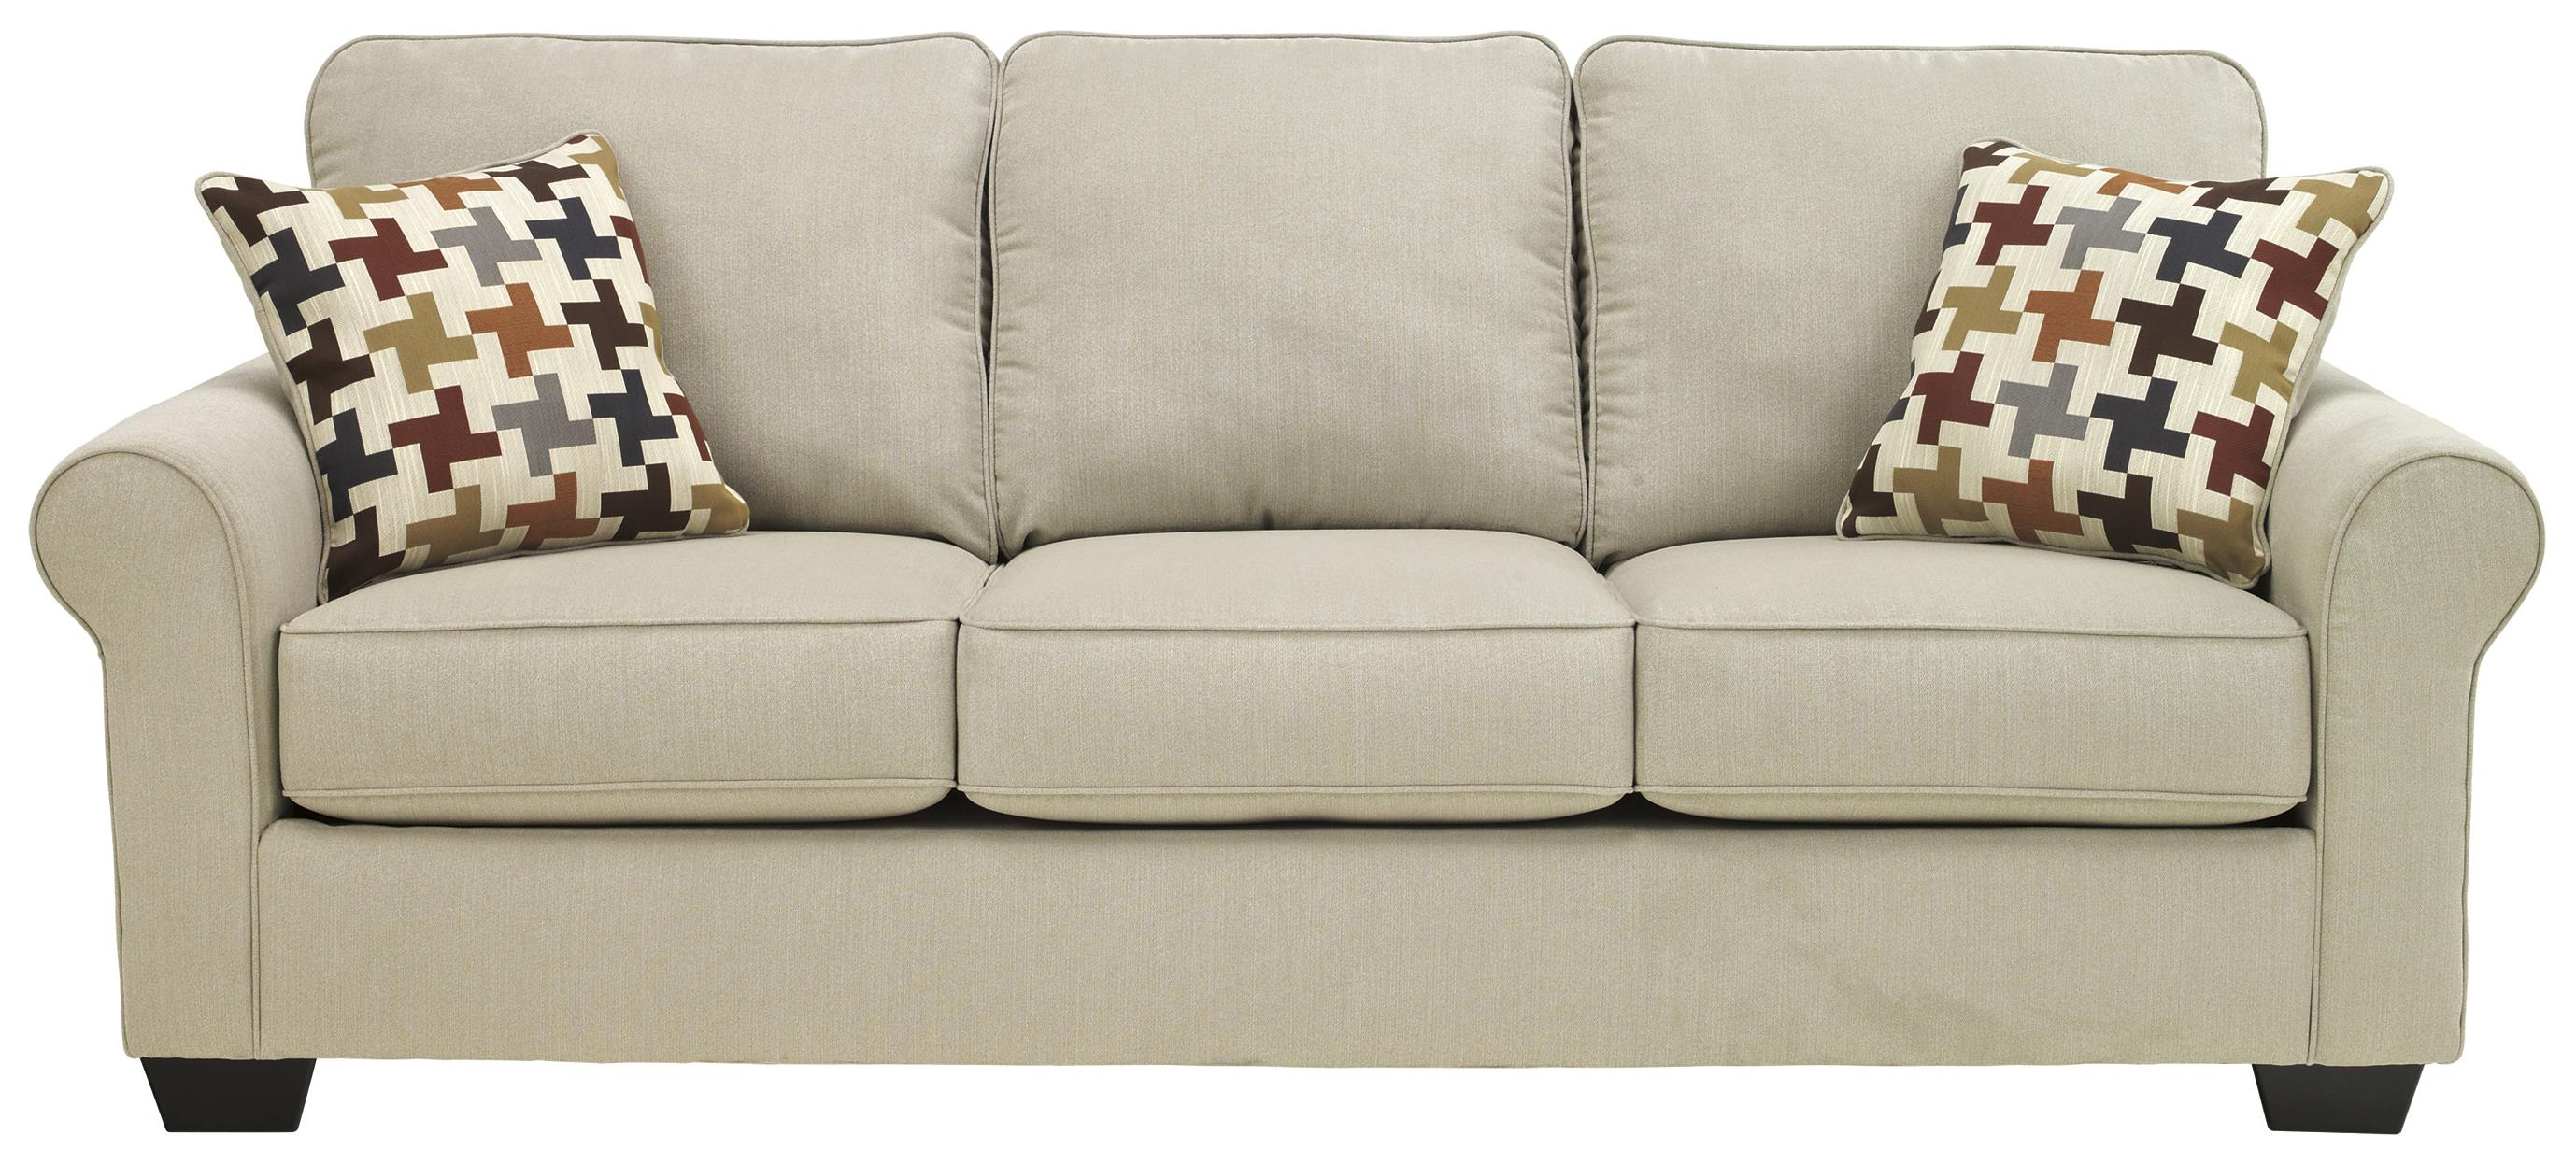 Ashley Furniture Caci Sofa - Item Number: 8820238